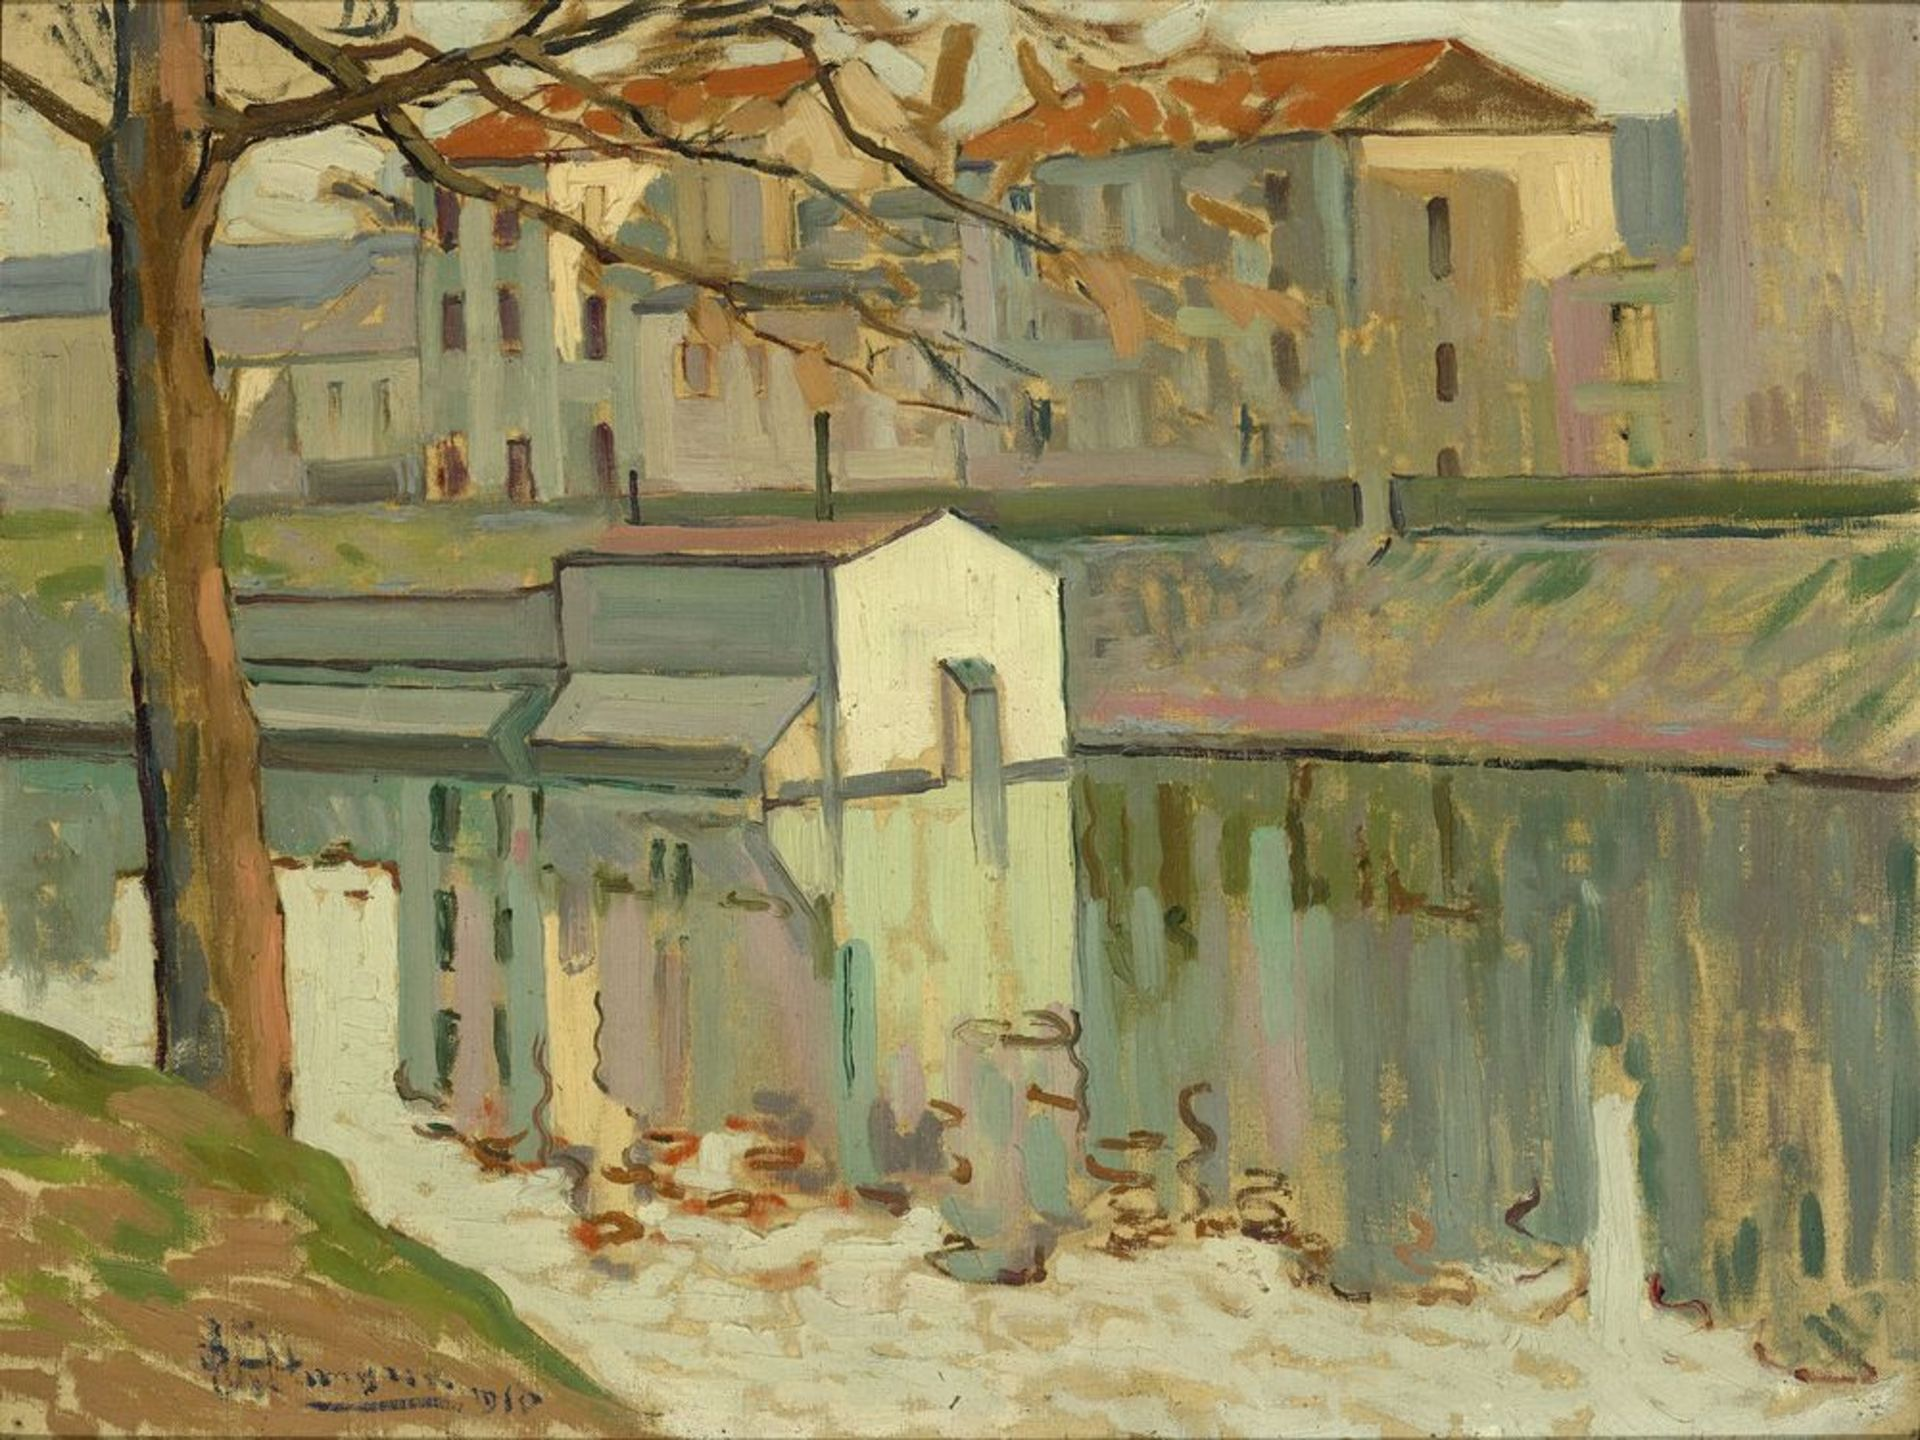 Los 36 - Natan Isaevich ALTMAN (1889-1970) - Channel embankment signed and dated 'Altman [...]